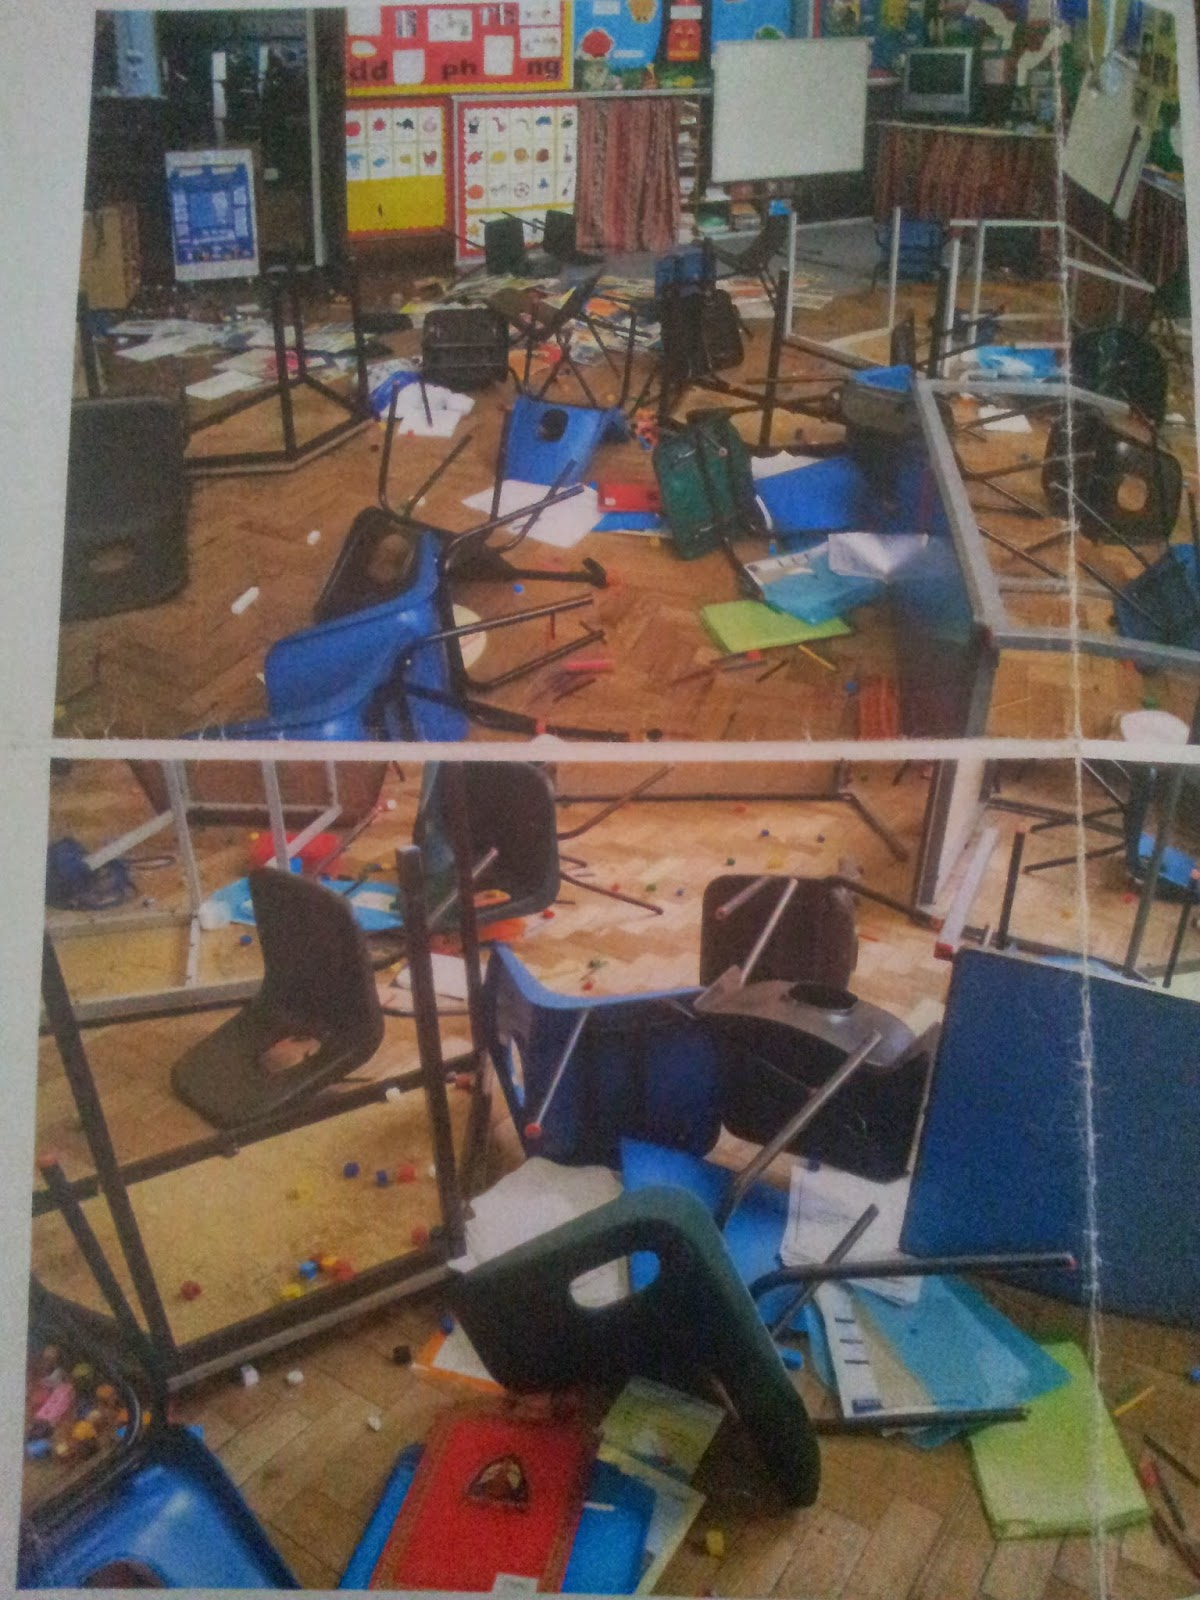 Up-turned tables and chairs. Bools & equipment thrown around.